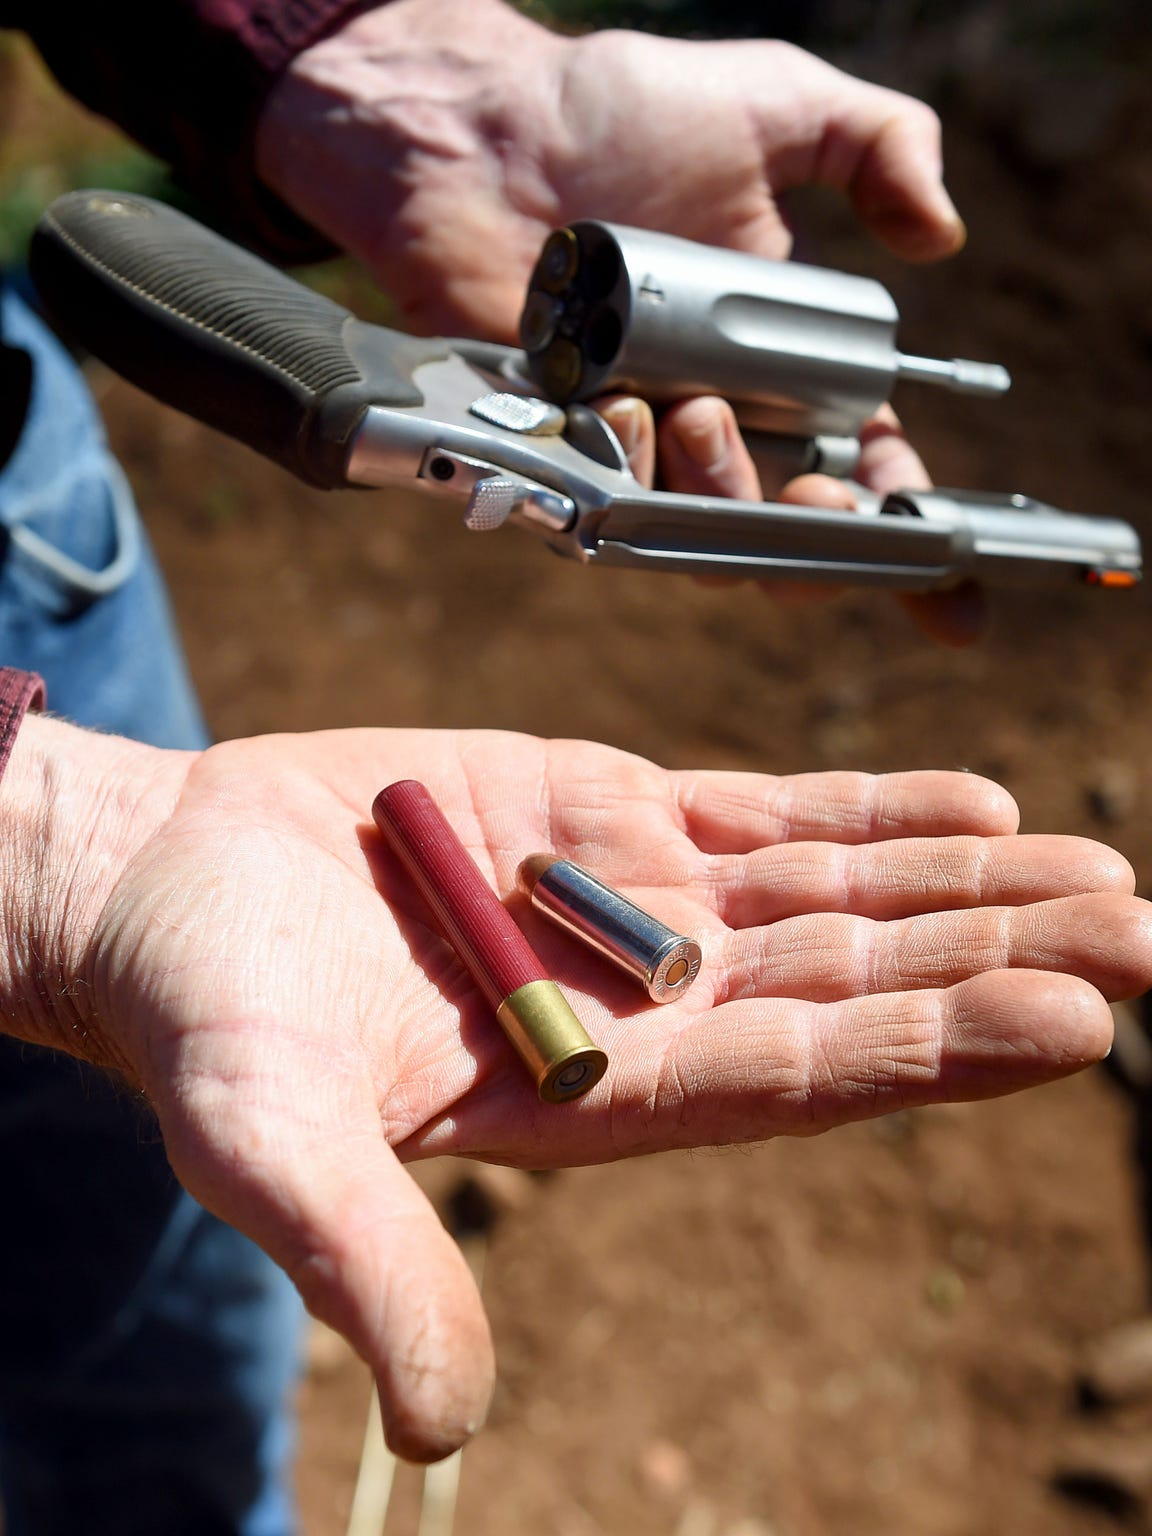 Jace Goodling shows the two types of bullets his Taurus